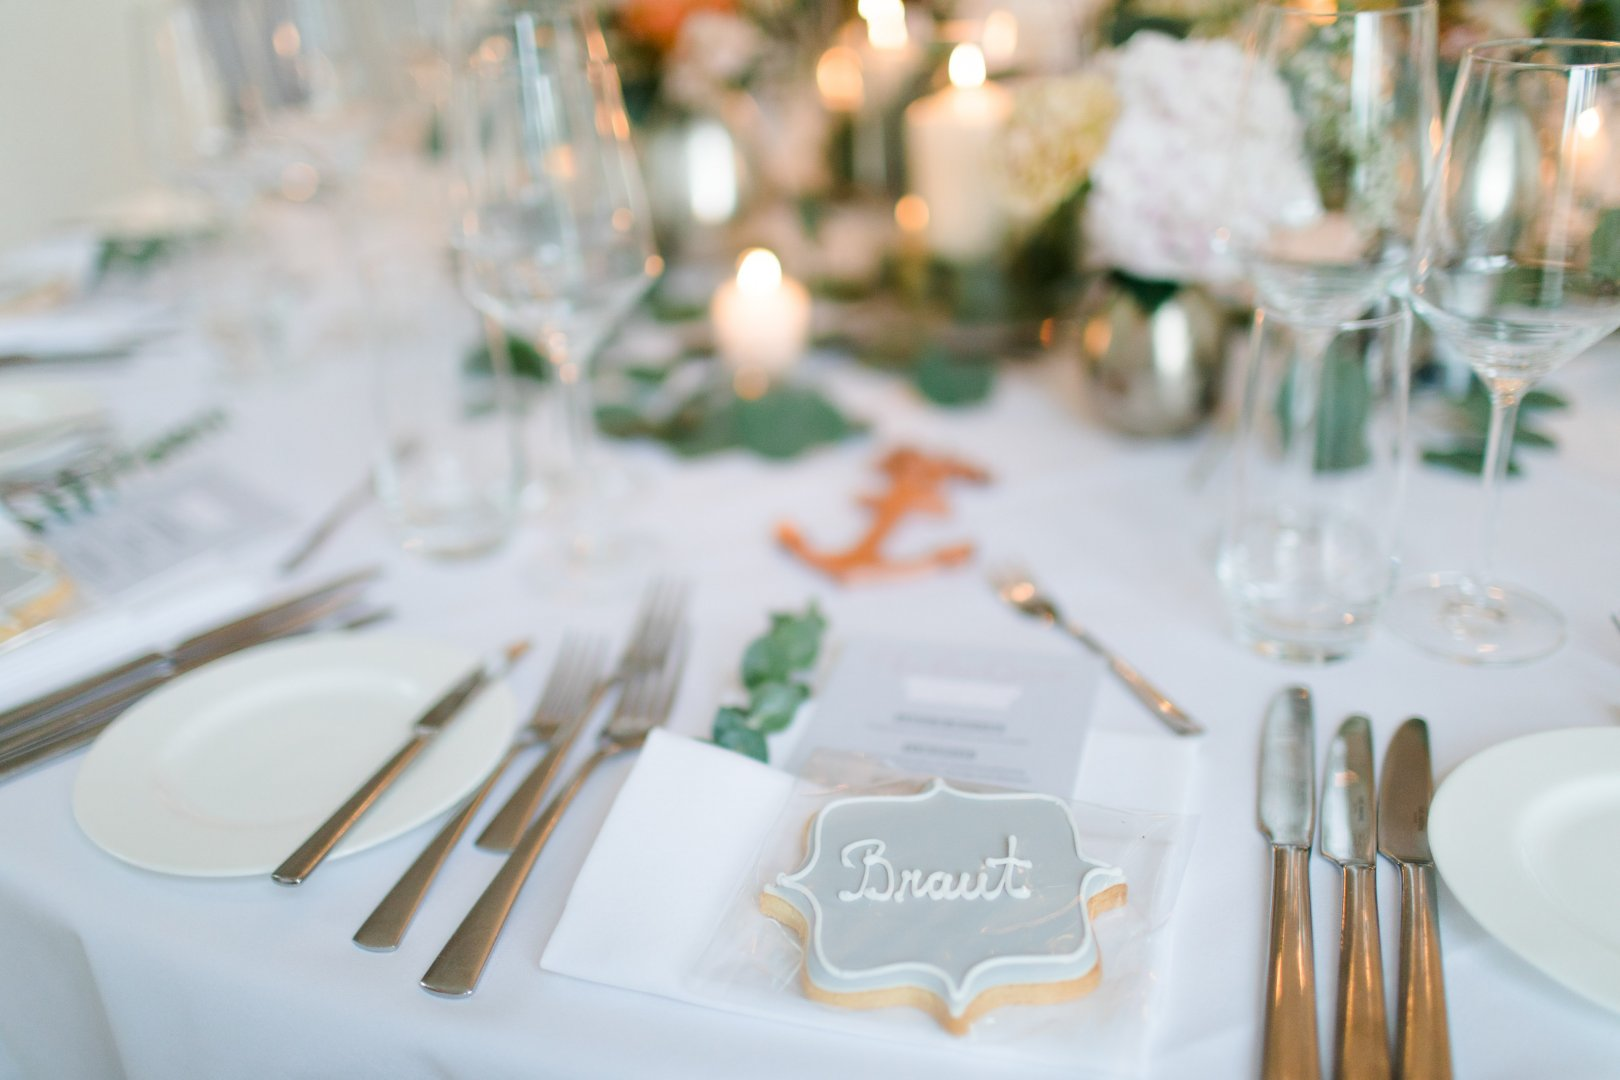 White Photograph Fork Rehearsal dinner Tableware Table Cutlery Tablecloth Champagne stemware Restaurant Textile Design Event À la carte food Linens Party supply Banquet Wedding reception Napkin Ceremony Flower Party Place card Stemware Calligraphy Household silver